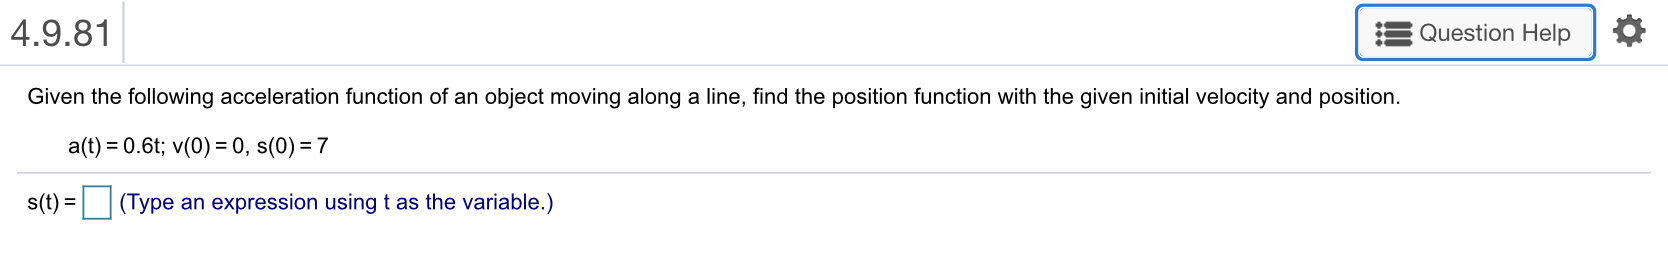 4.9.81 Question Help Given the following acceleration function of an object moving along a line, find the position function with the given initial velocity and position. a(t) = 0.6t; v(0) = 0, s(0)-7 s(t)-□ (Type an expression using t as the variable.)